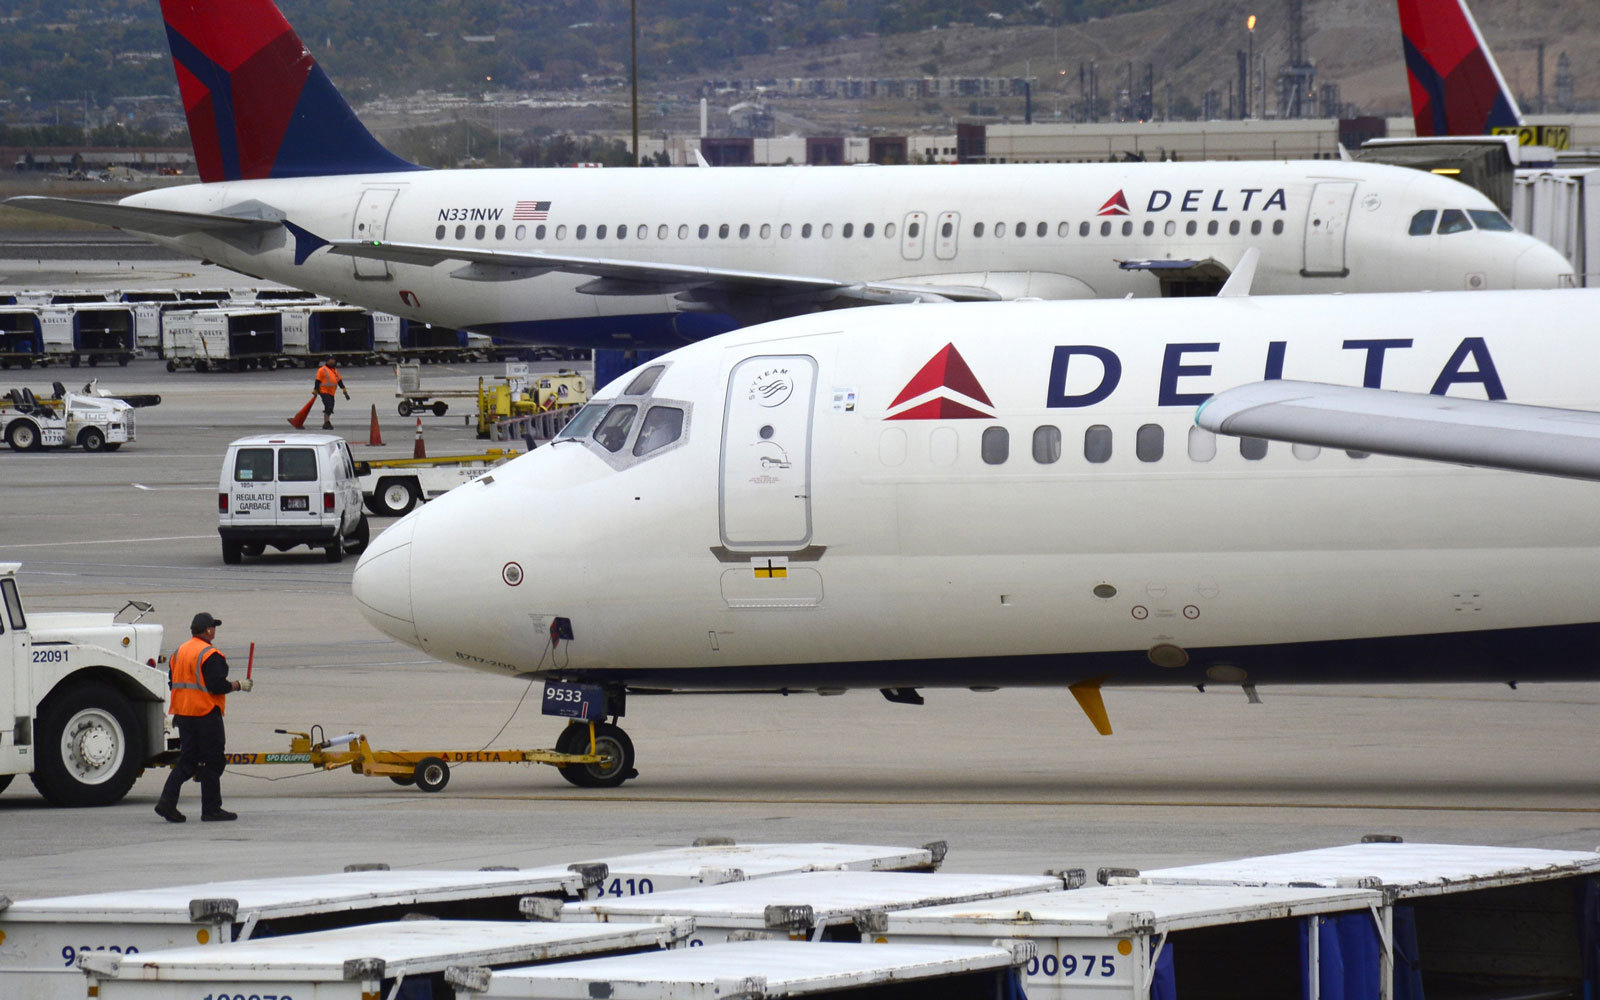 A Delta plane at the airport.